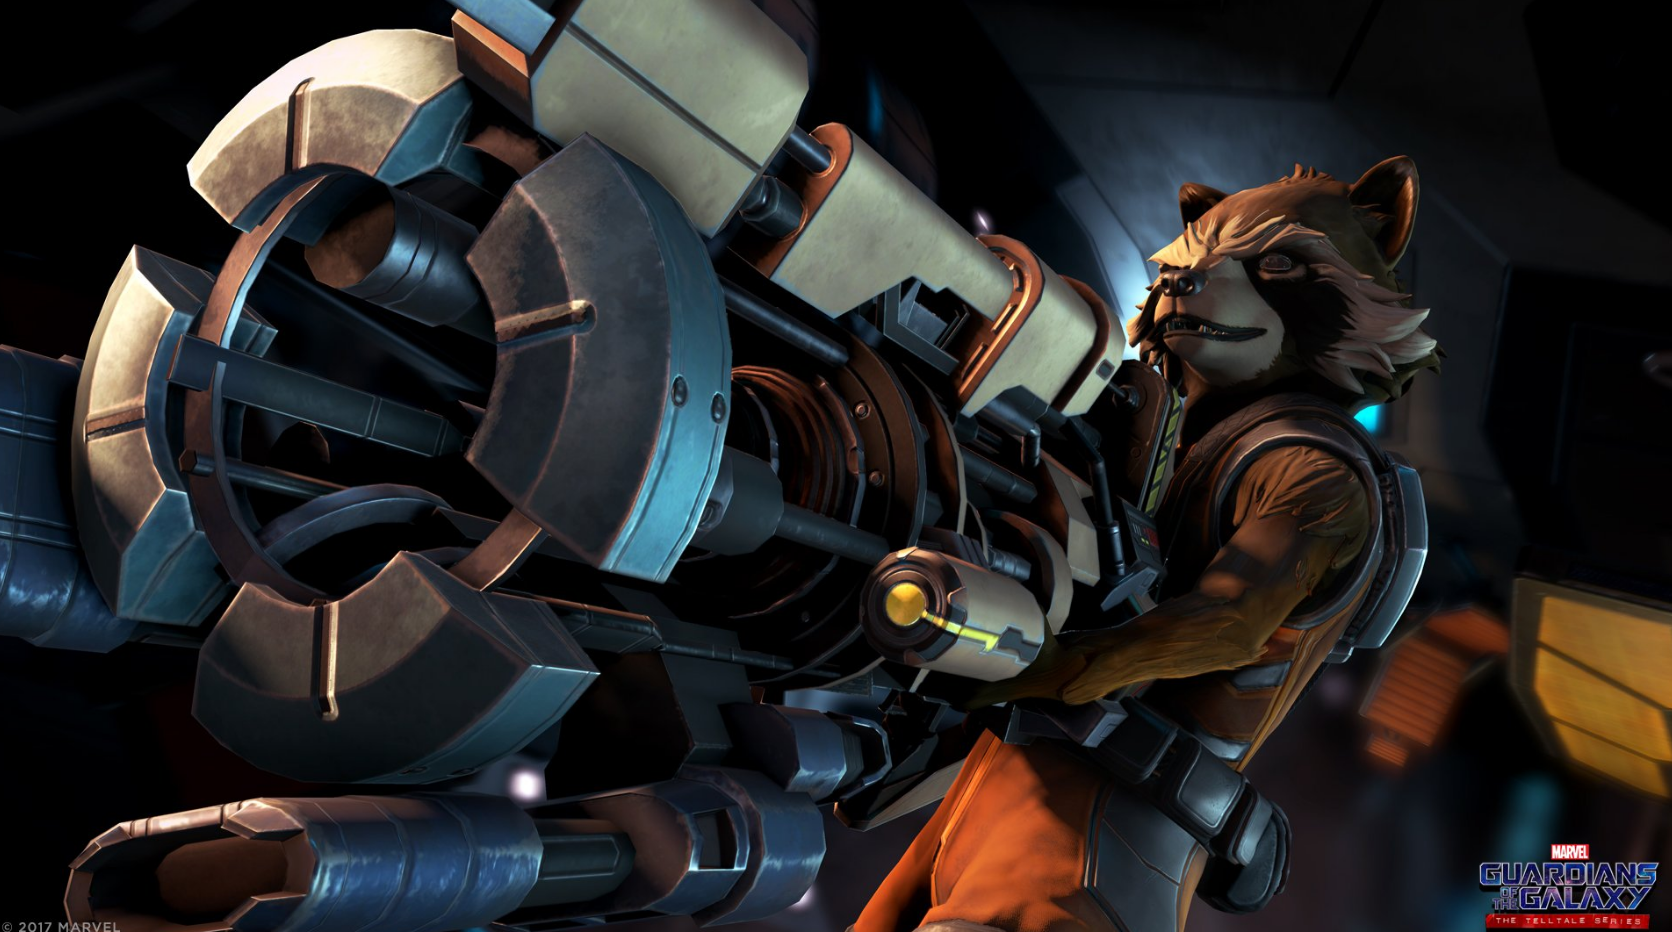 'Marvel's Guardians of the Galaxy: The Telltale Series' - OFFICIAL TRAILER